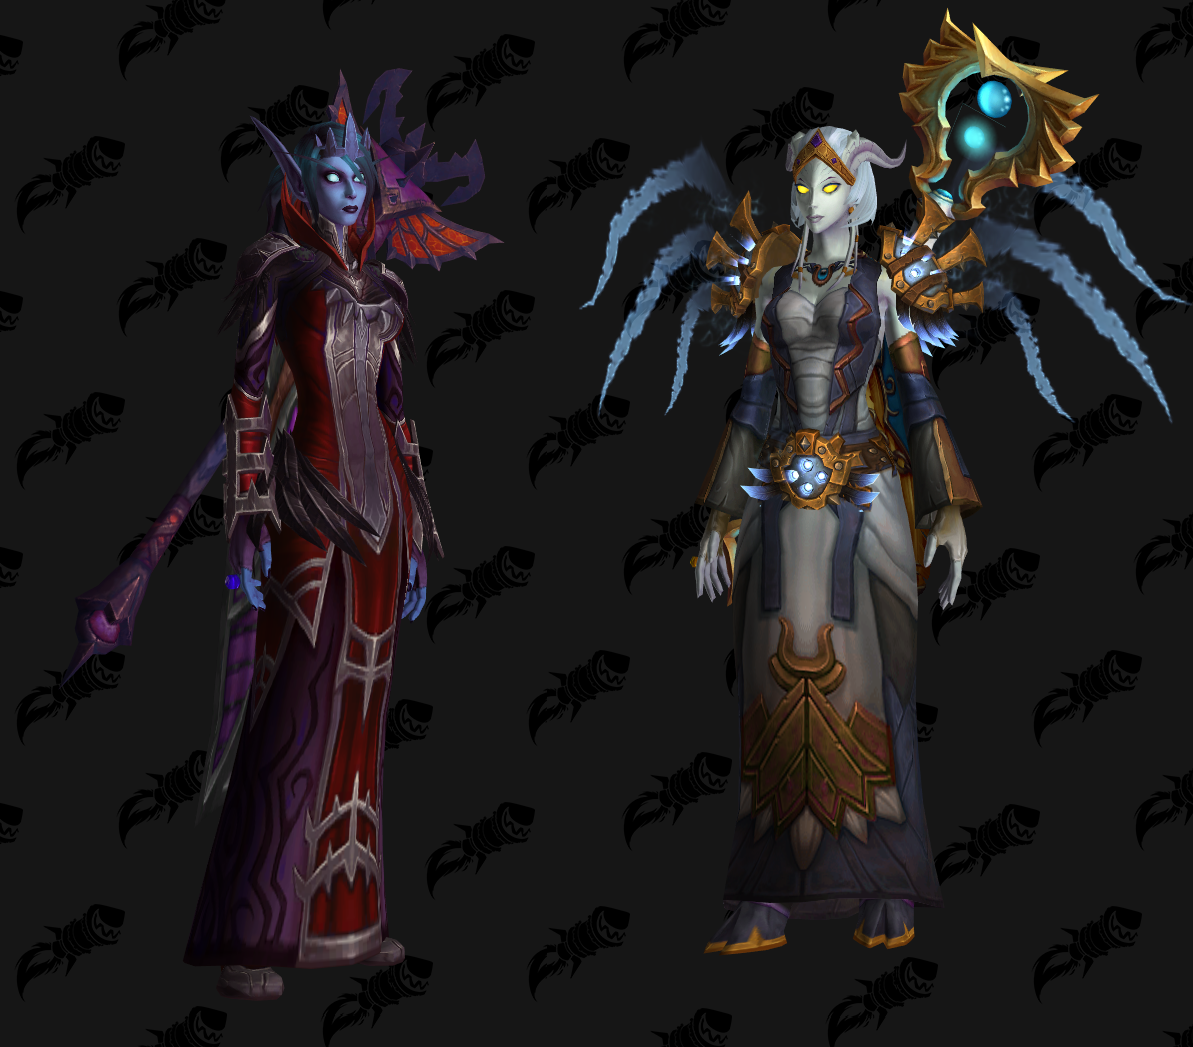 My Void Elf And Lightforged Priest Transmogs Worldofwarcraft Blizzard Hearthstone Wow Warcraft Blizzardcs Gaming Priest World Of Warcraft Warcraft A first look at the blood elf heritage armor added in this weeks 8.1 ptr build 28151. pinterest